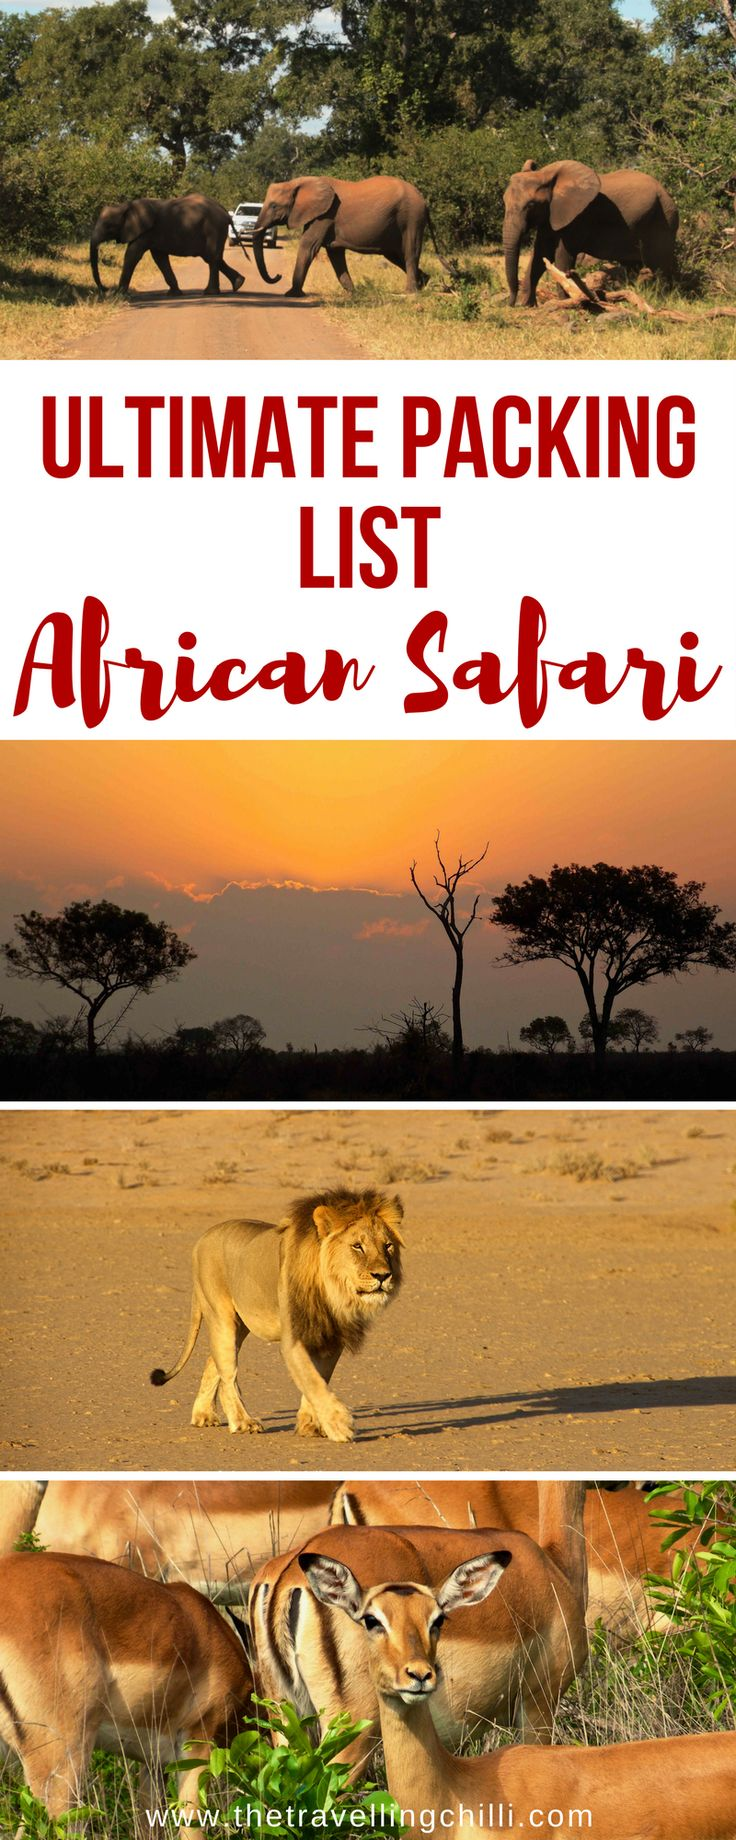 The Ultimate Packing List for an African Safari | African Safari Packing List #africansafari #packinglist